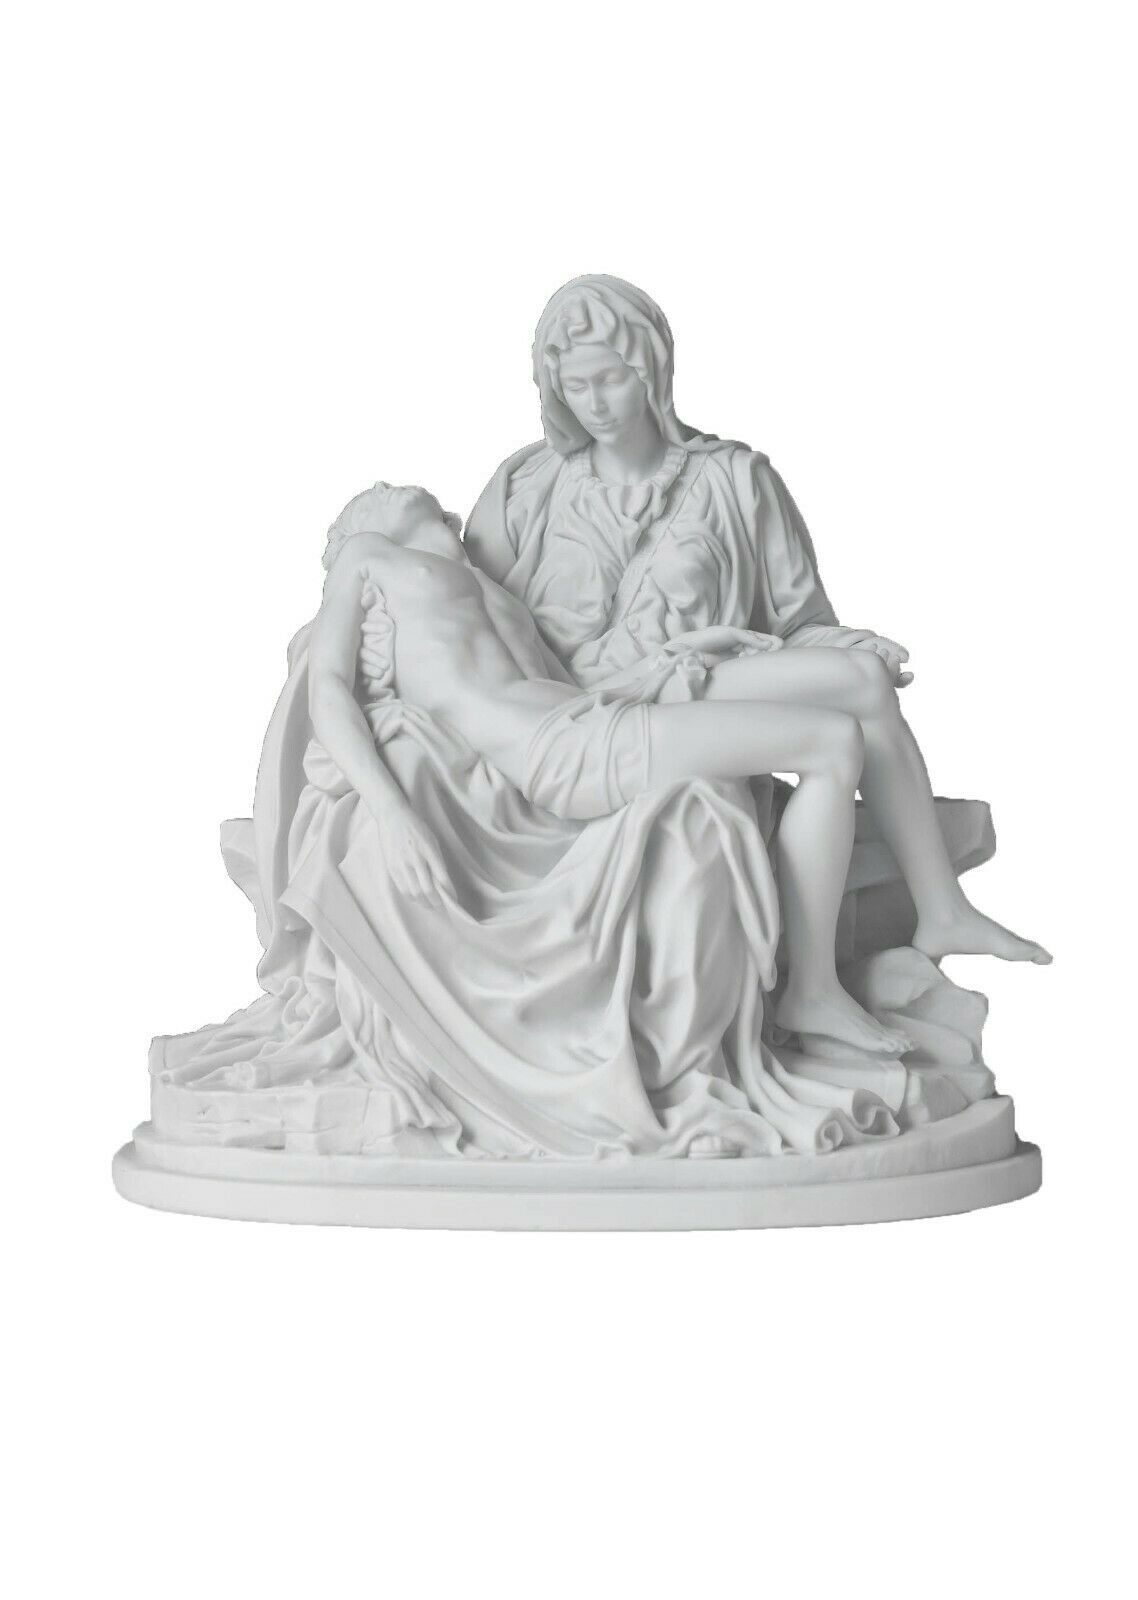 "Primary image for 10.5"" La Pieta Jesus Mary Michelangelo Catholic Religious Statue Made in Italy"